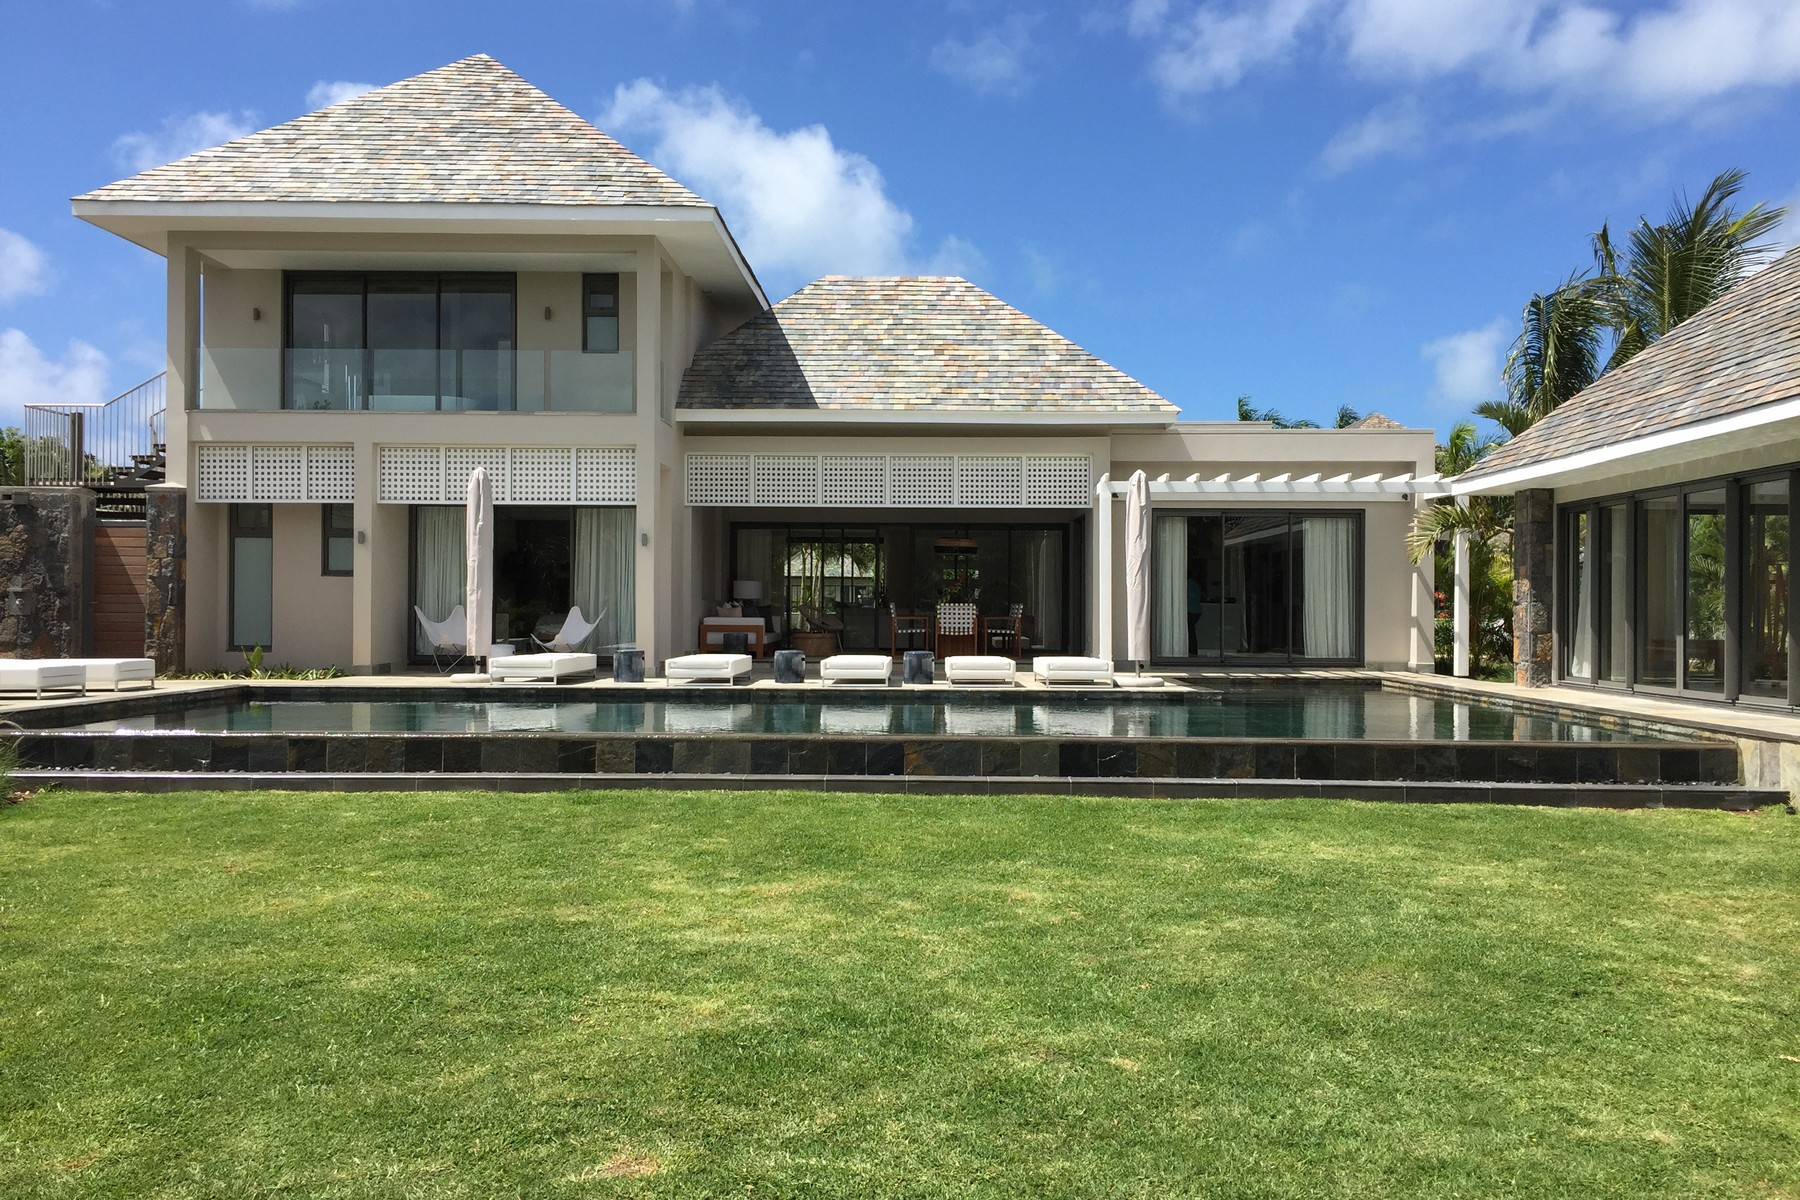 Other Residential for Sale at Delta Villa Other Riviere Du Rempart, Riviere Du Rempart Mauritius